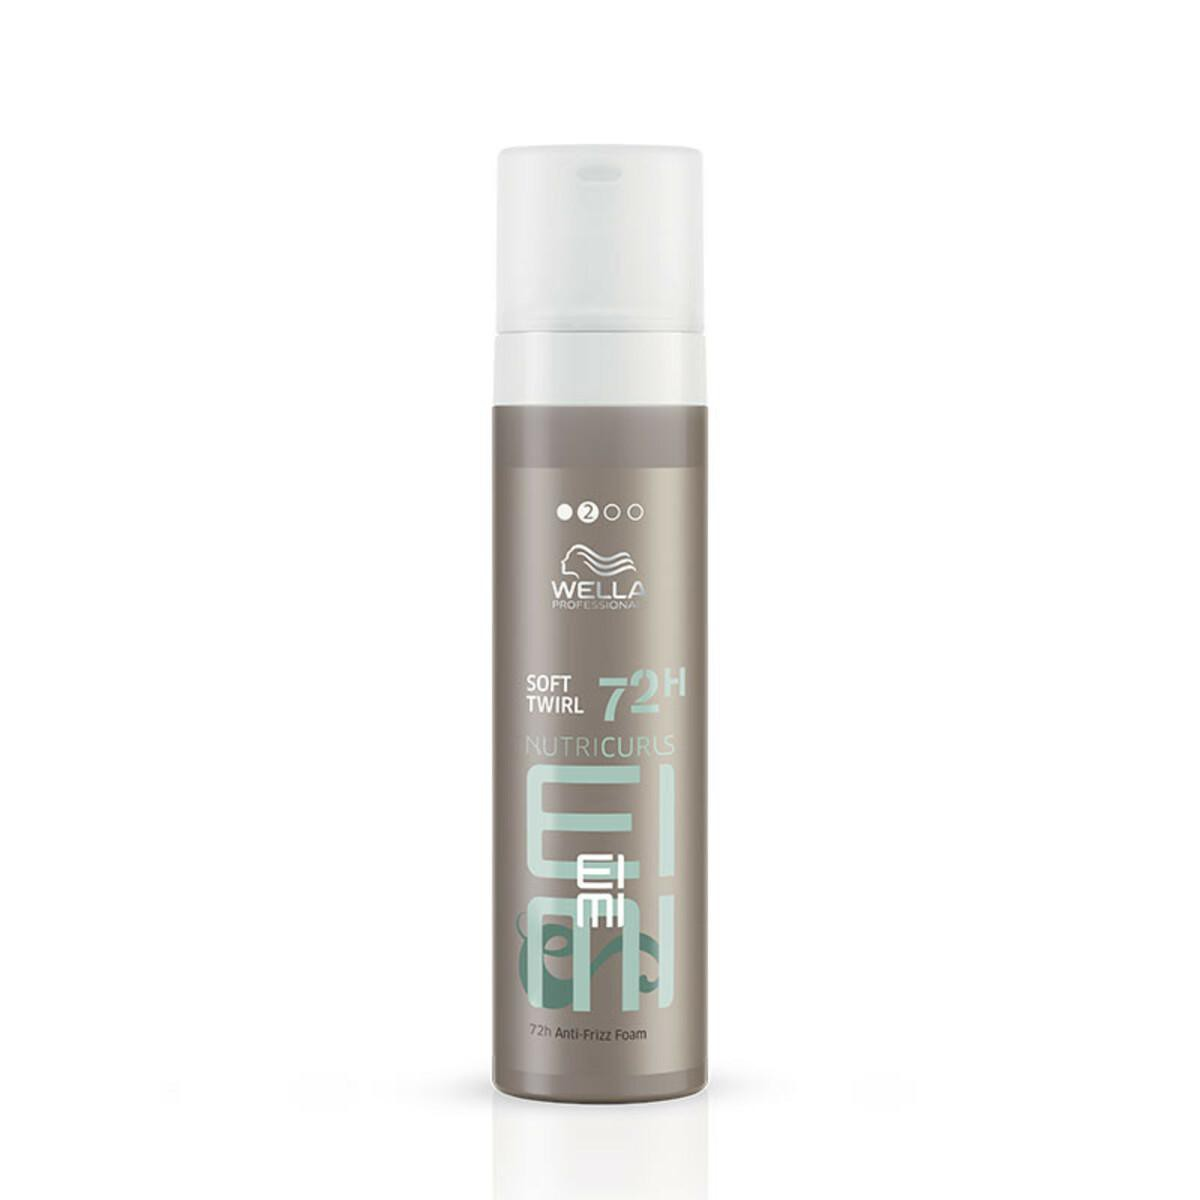 Mousse Légère Anti-Frisottis 72H Eimi by Wella